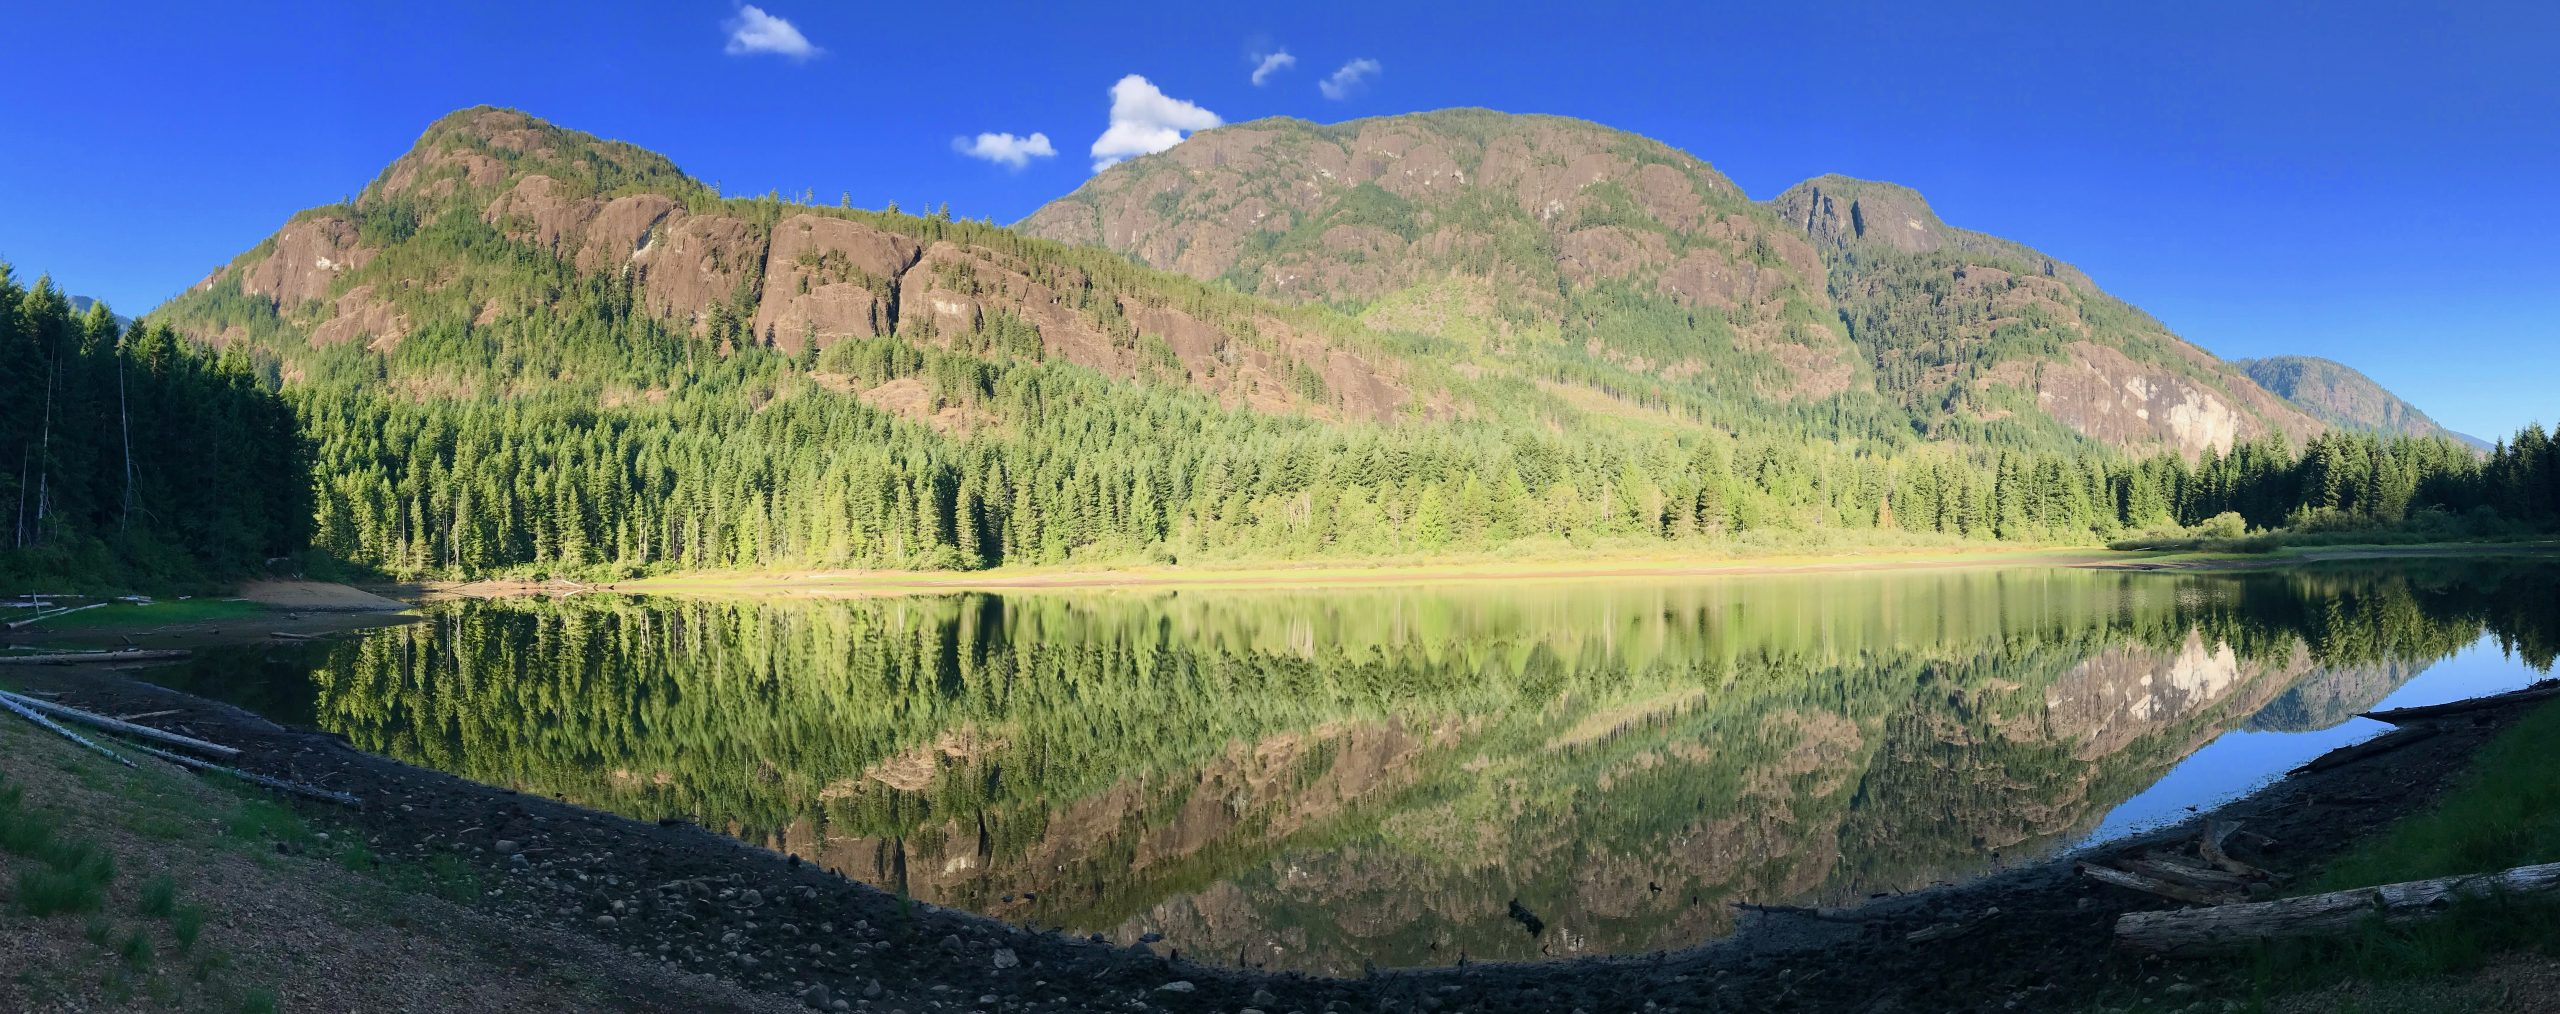 Darkis Lake reflects the surrounding beauty in Strathcona Park on Vancouver Island